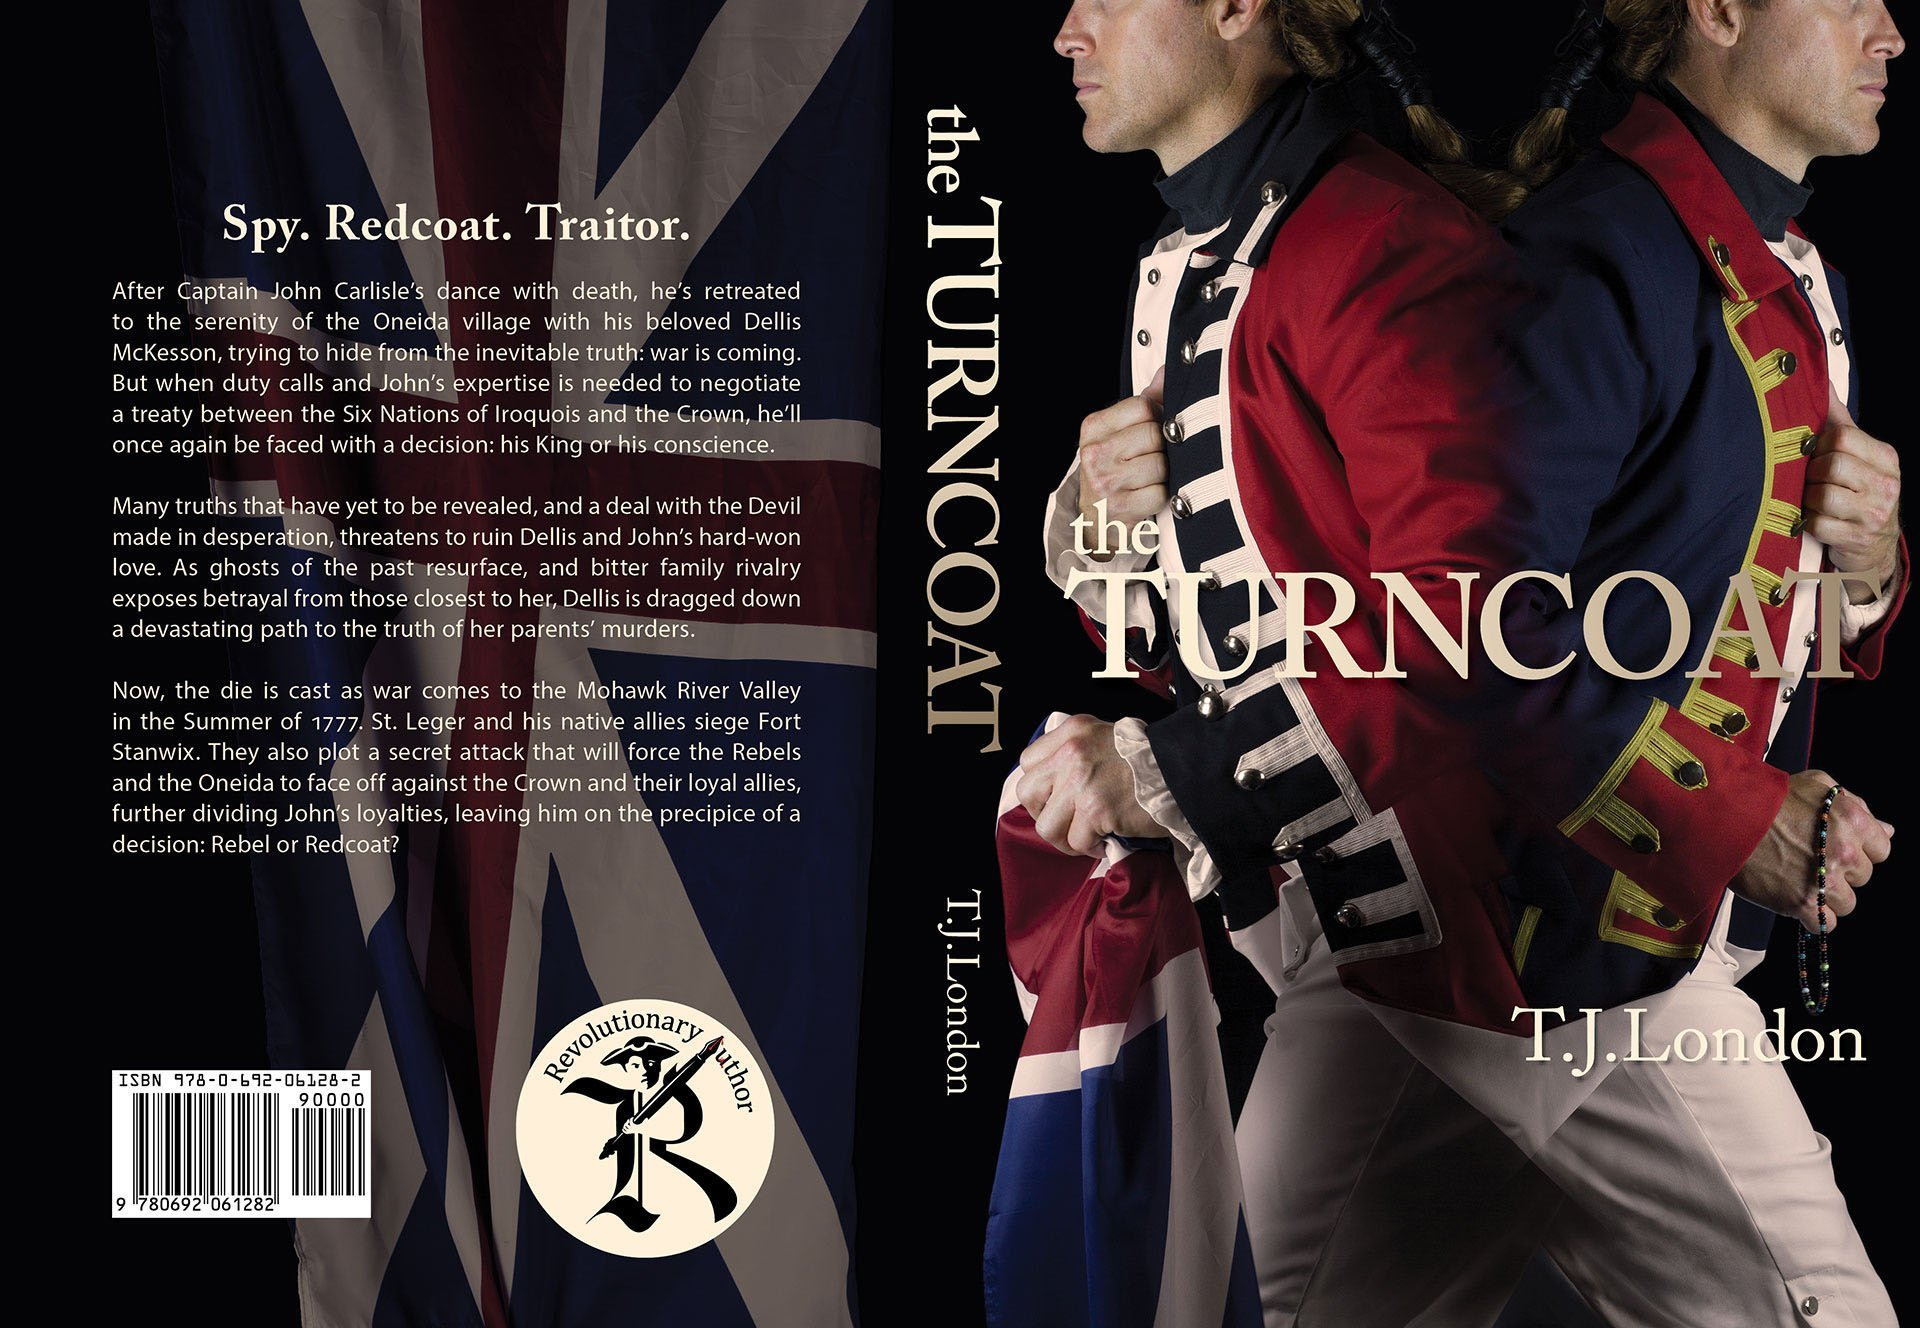 the TURNCOAT by T.J.London